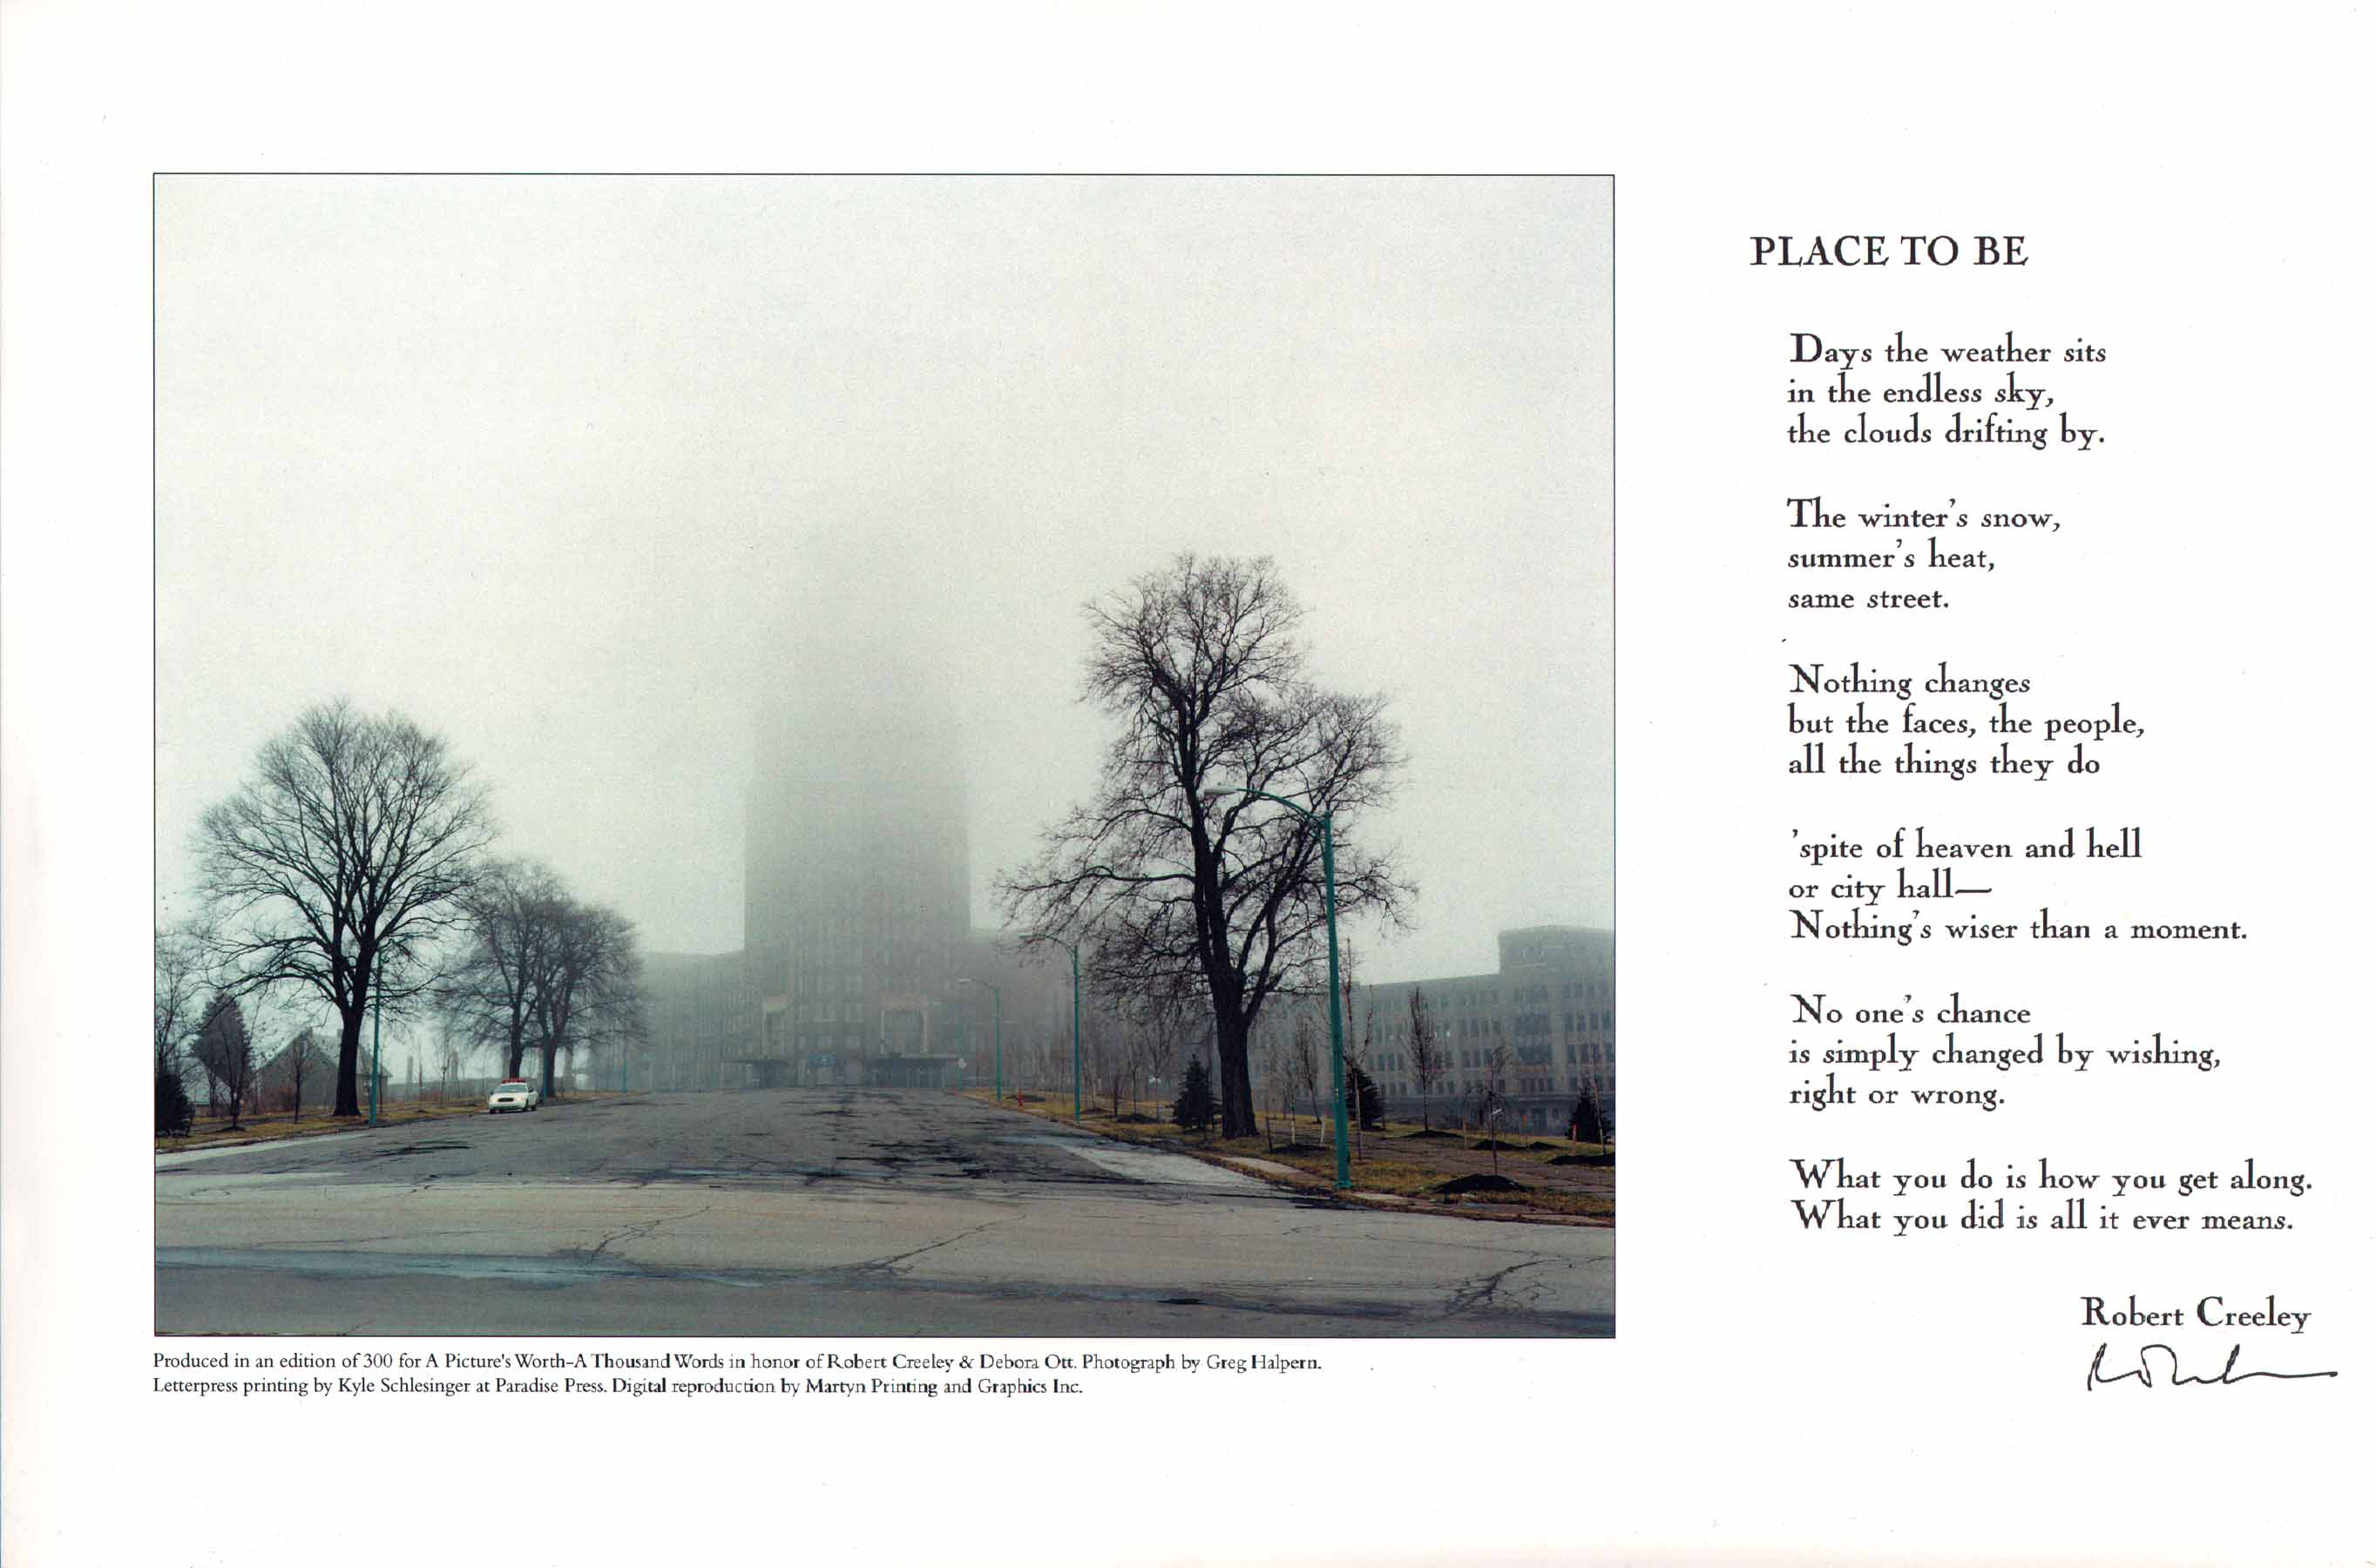 image of broadside by Robert Creeley: Place To Be // Days the weather sits / in the endless sky, / the clouds drifting by. // The winter's snow, / summer's heat, / same street. // Nothing changes / but the faces, the people, / all the things they do // 'spite of heaven and hell / or city hall-- / Nothing's wiser than a moment. // No one's chance / is simply changed by wishing, right or wrong. // What you do is how you get along. / What you did is all it ever means. Robert Creeley. Produced in an edition of 300 for A Picture's Worth A Thousand Words in honor of Robert Creeley and Debora Ott. Photograph by Greg Halpern. Letterpress printing by Kyle Schlesinger at Paradise Press. Digital reproduction by Martyn Printing and Graphics Inc.